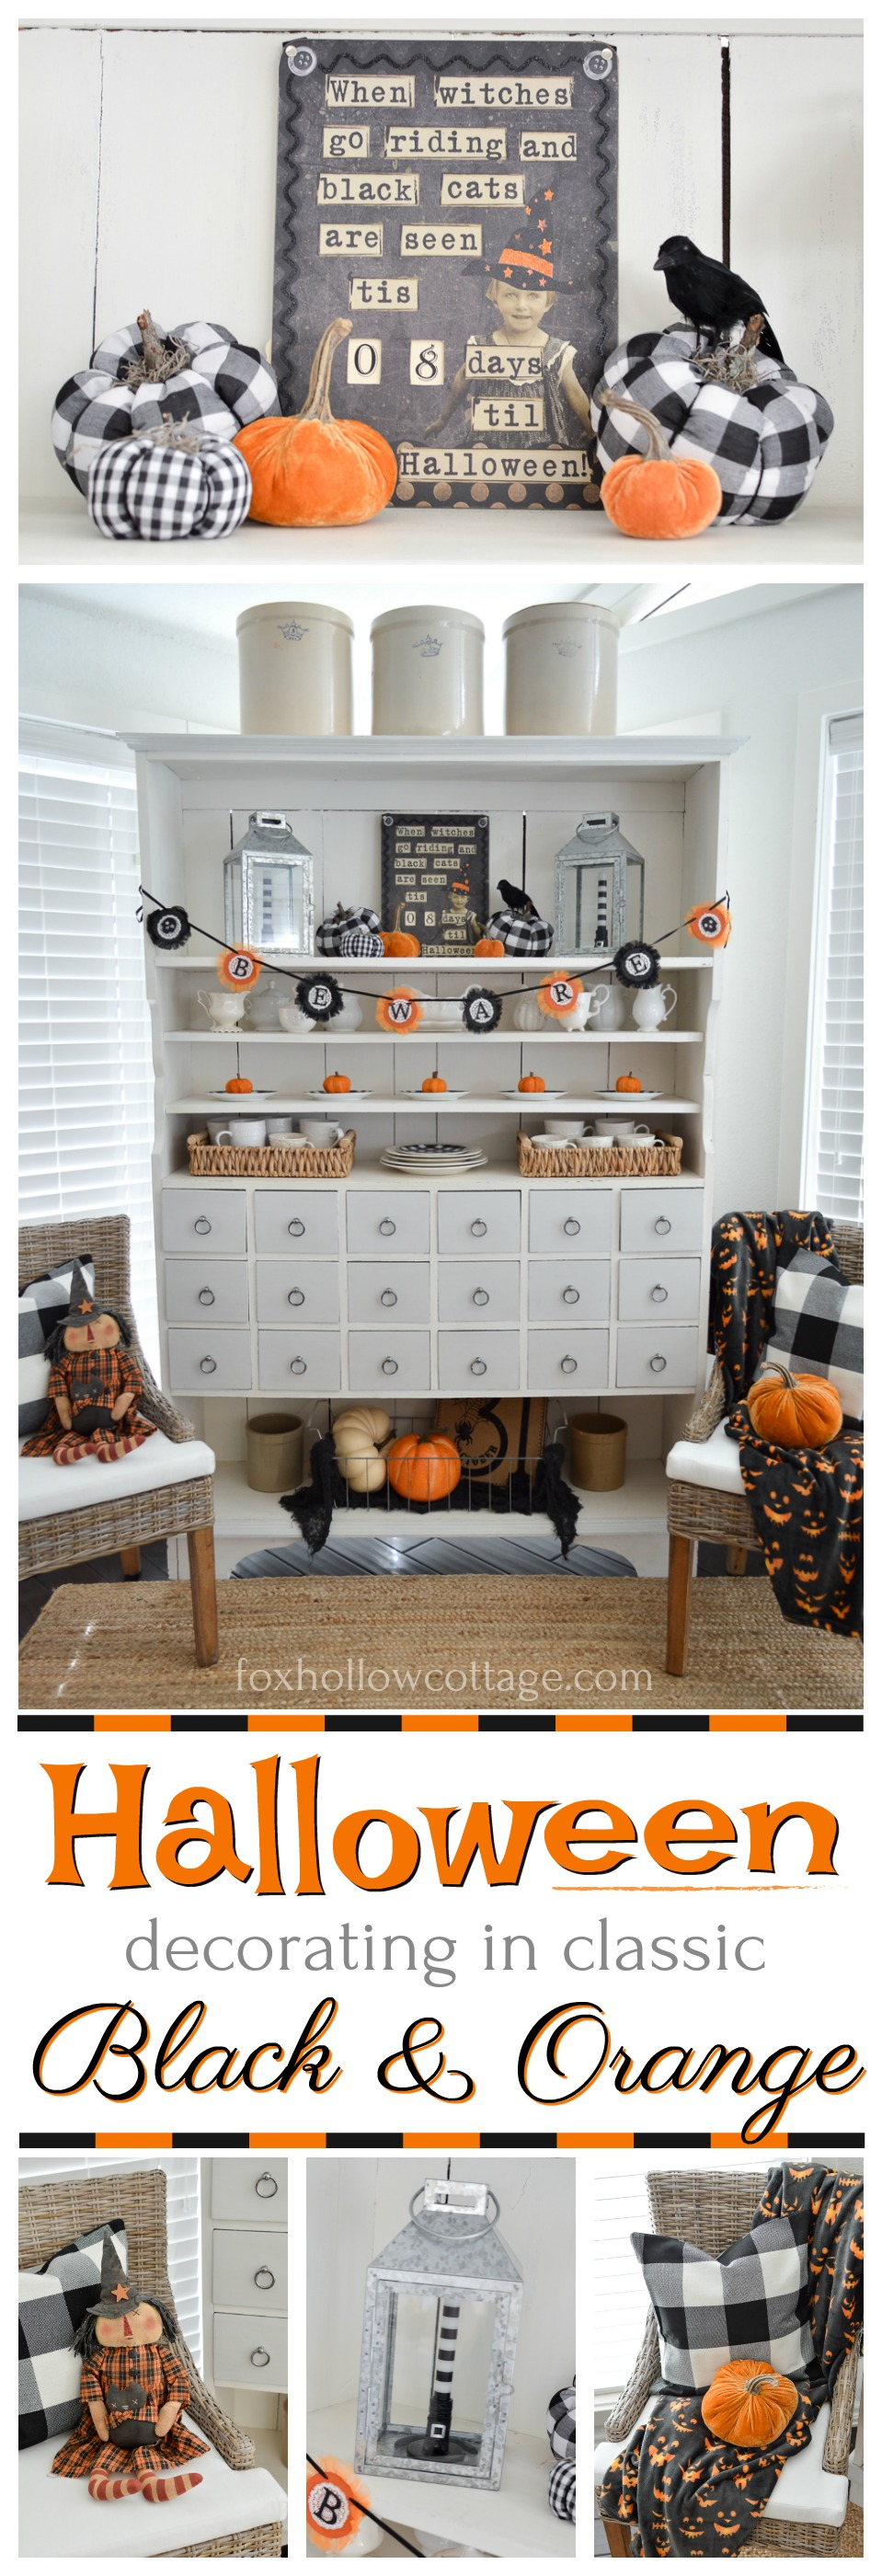 Classic black & orange Halloween decor decorating ideas - @HomeGoods vintage BEWARE banner garland, holiday countdown - Fox Hollow Cottage style - sponsored pin